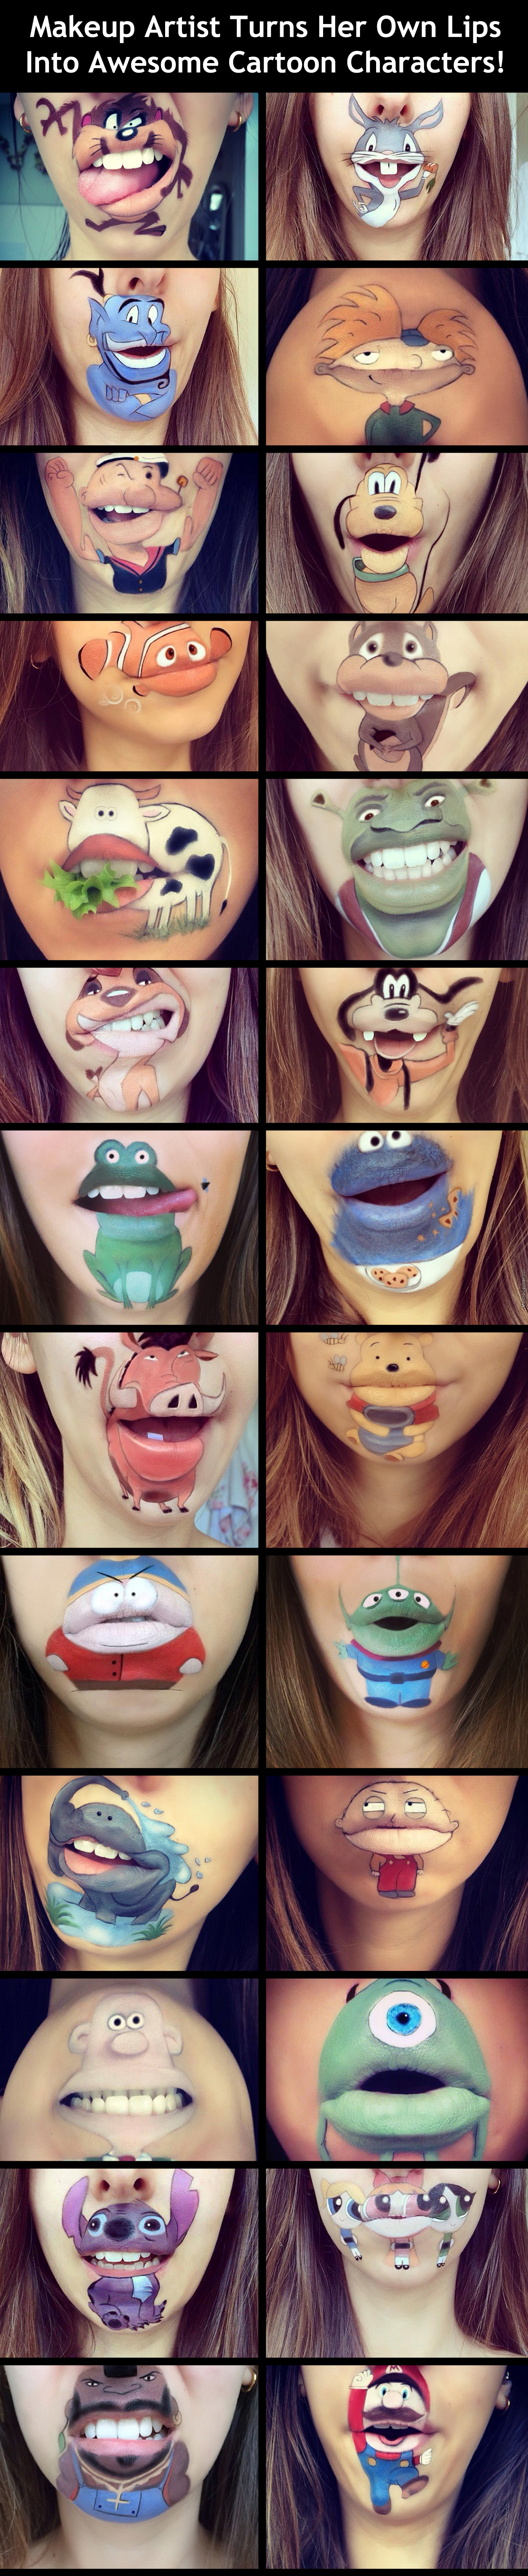 Excellent Use Of Lips If You Know What I Mean